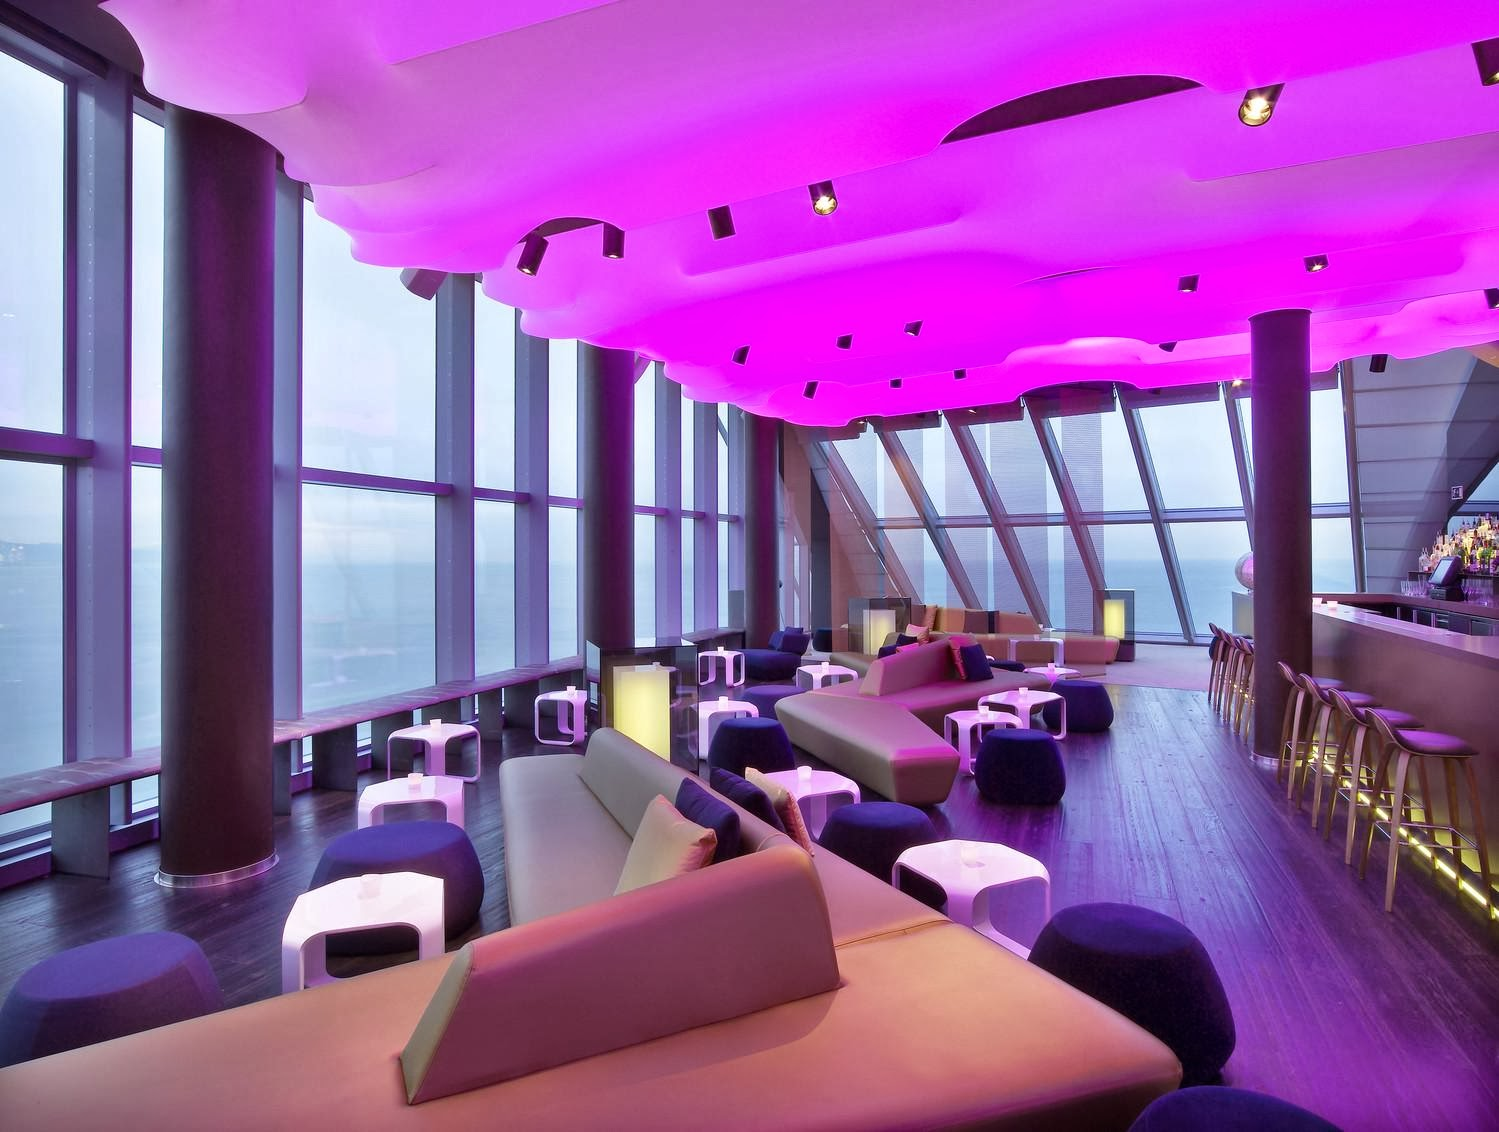 Hortibus hotels design le w a barcelone for Hotel design a barcelone